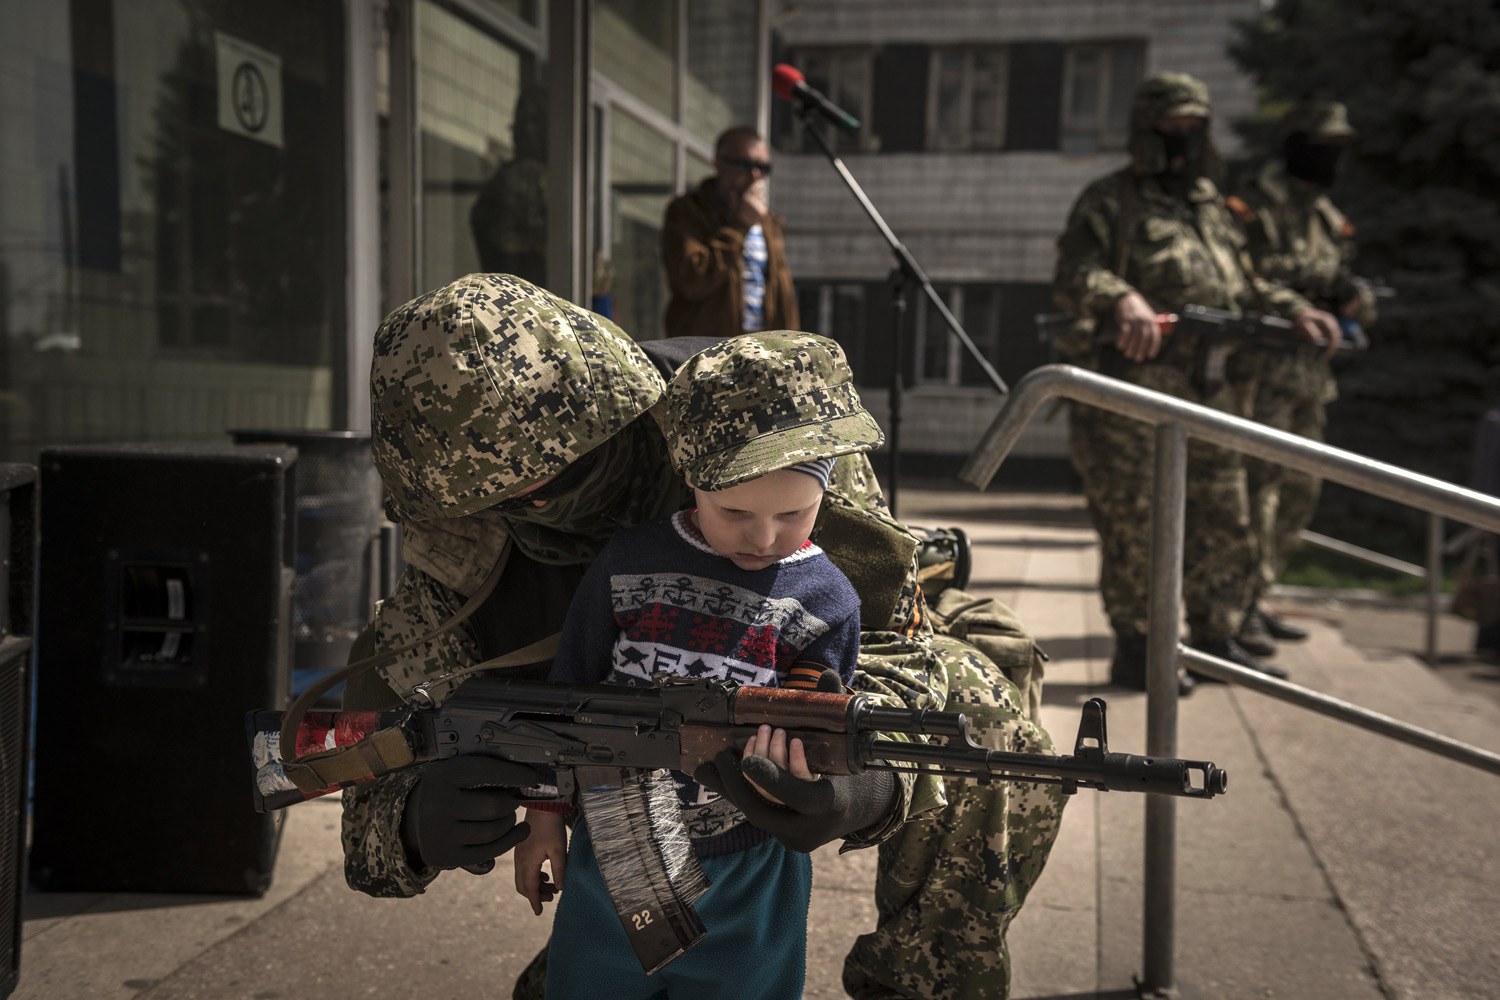 Apr. 28, 2014. A pro-Russia militia member standing guard outside a seized government building allows a child to partially hold his gun, in Konstantinovka, Ukraine,